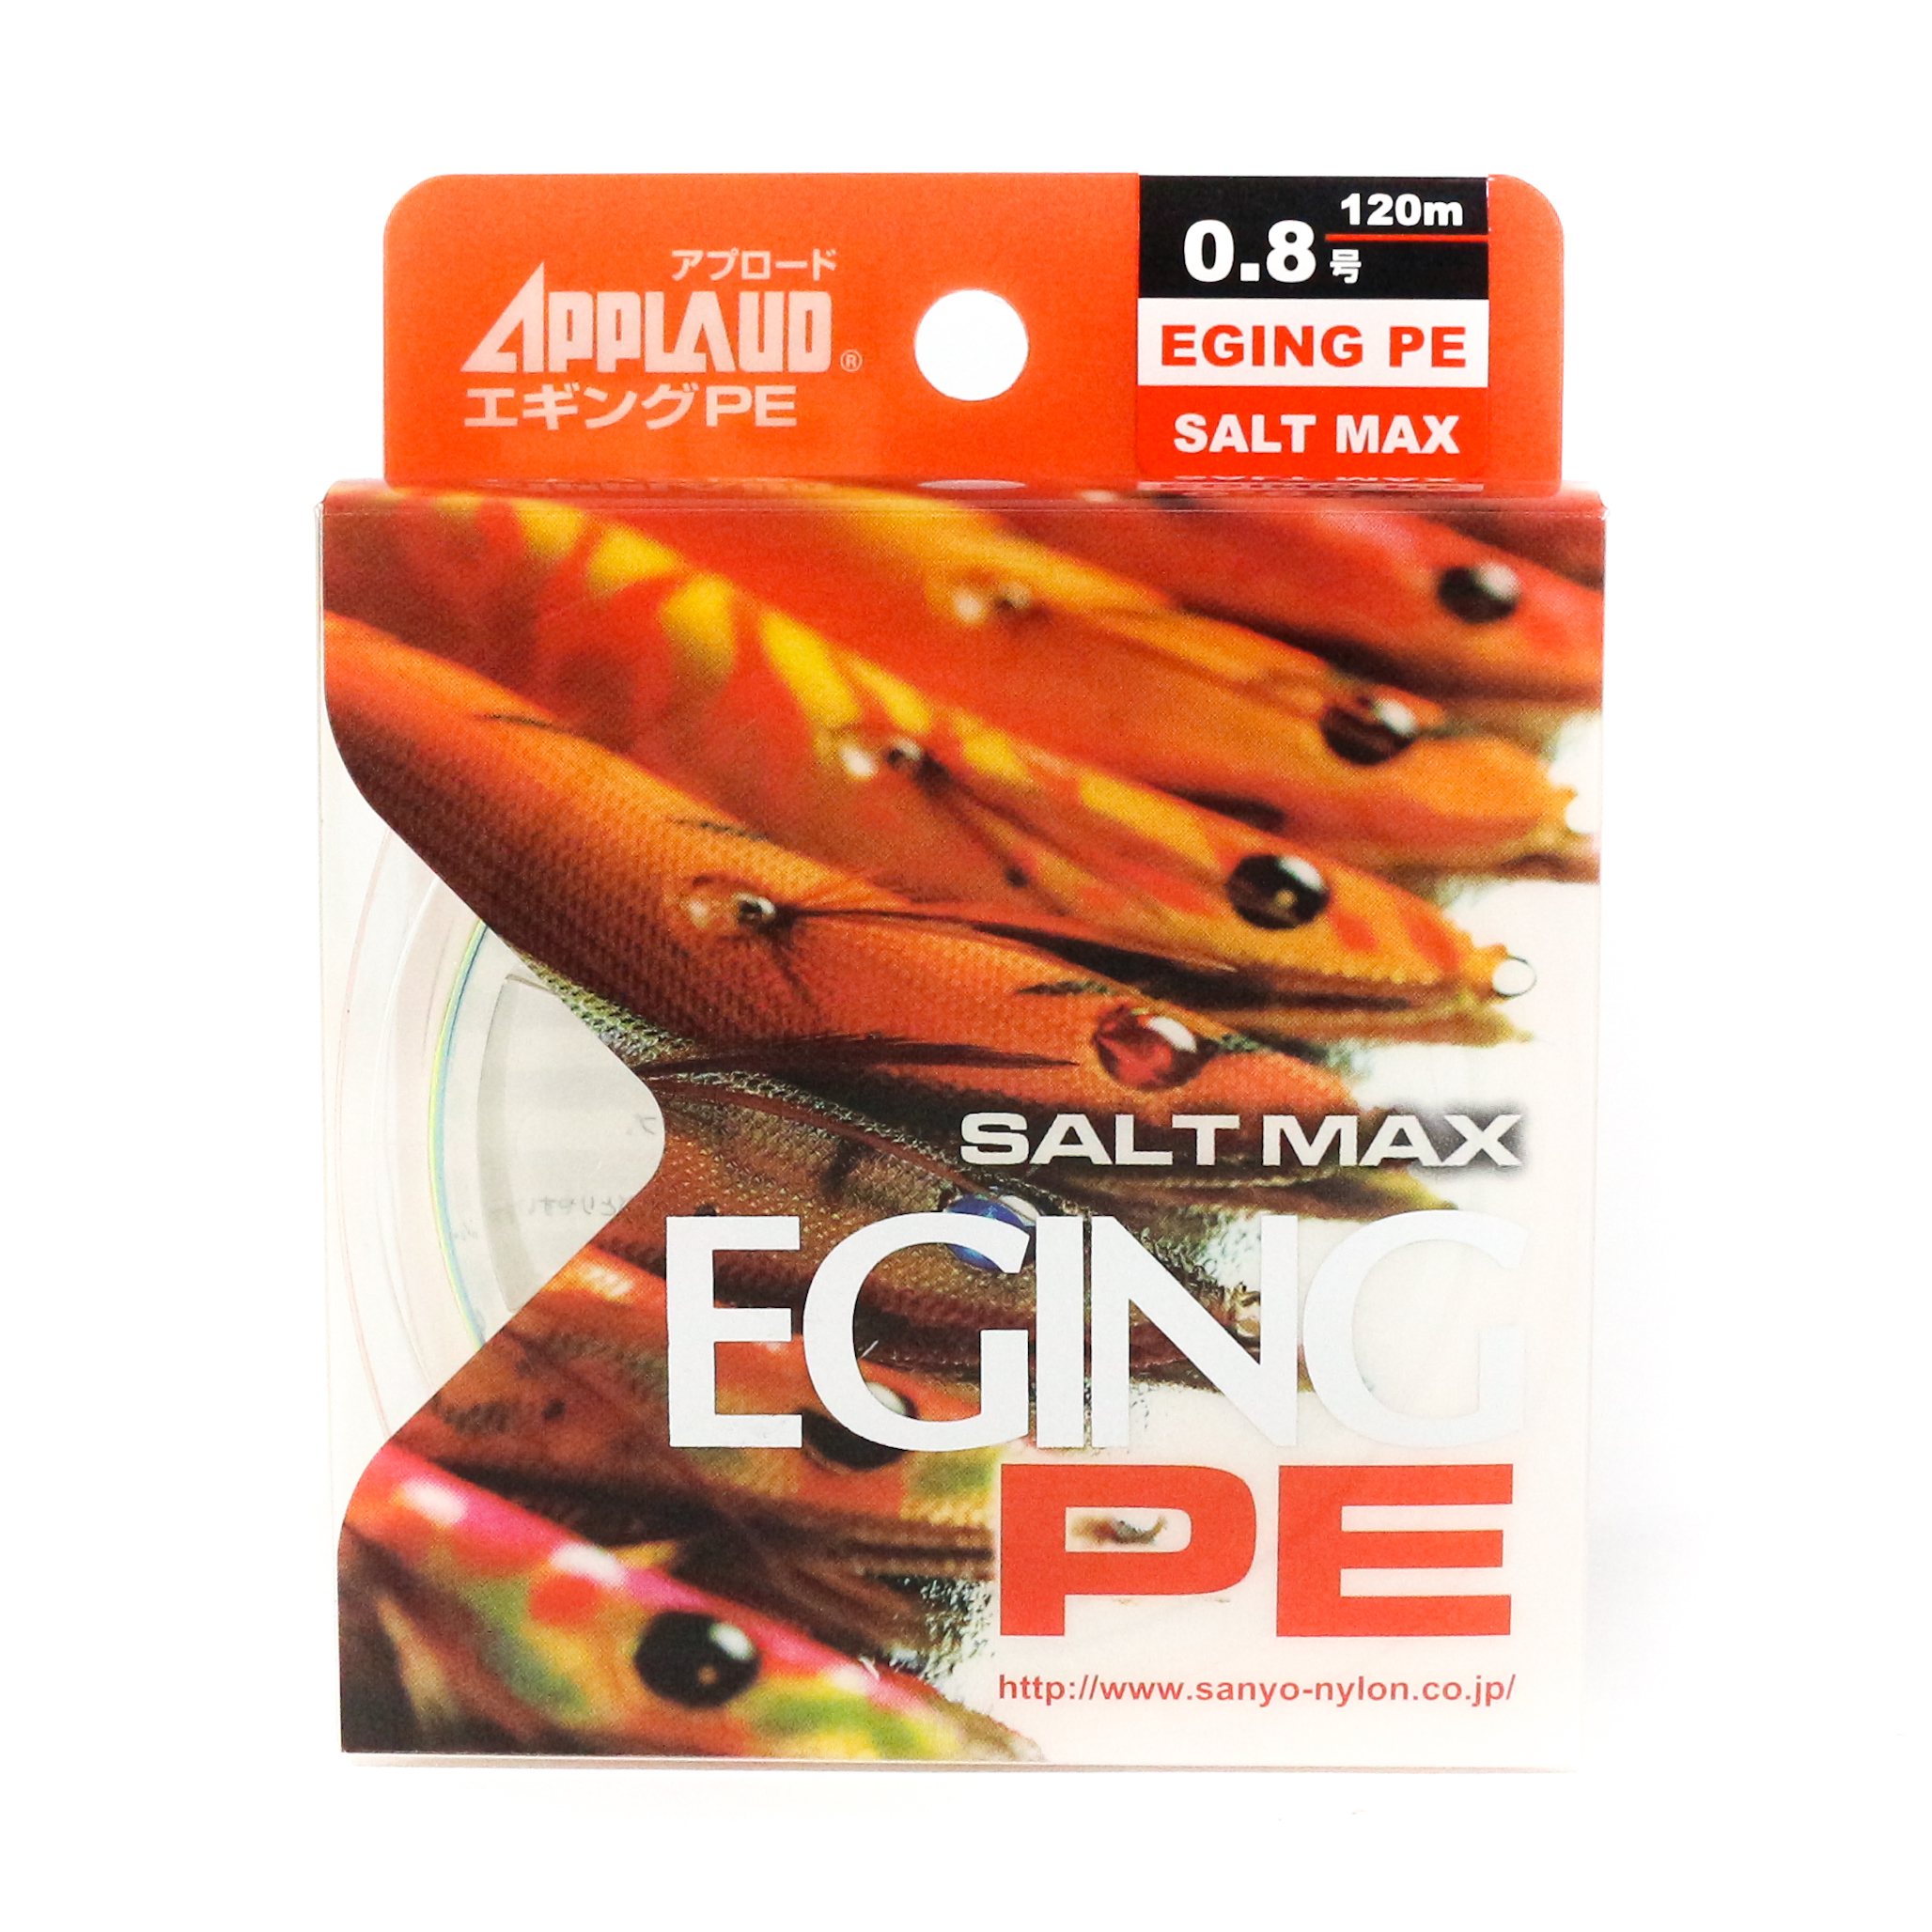 Sale Sanyo Applaud P.E Line Saltmax Eging PE 120M Multicolor P.E 0.8 (0089)